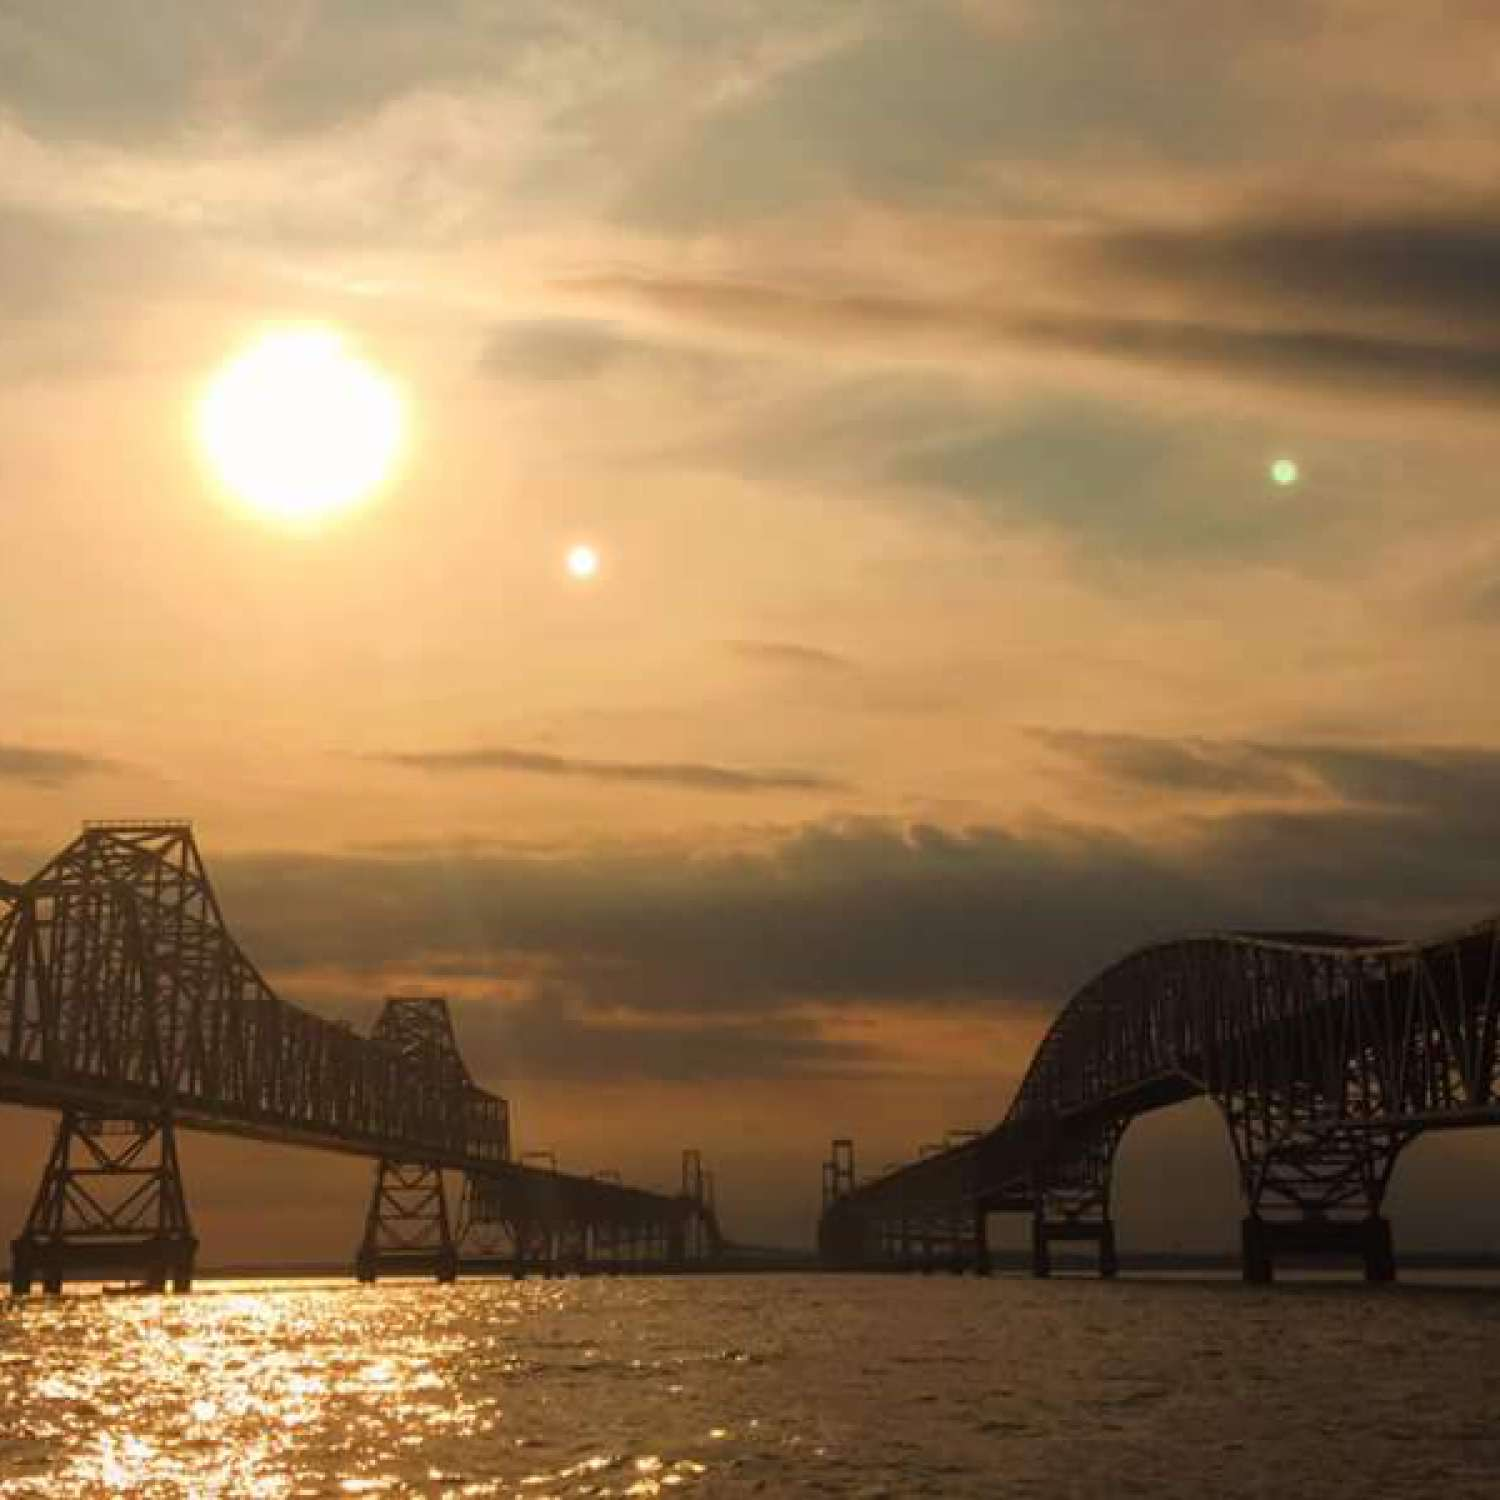 Title: Bay Bridge Sunset - On board their Sportsman Open 252 Center Console - Location: Grasonville, Maryland. Participating in the Photo Contest #SportsmanDecember2015